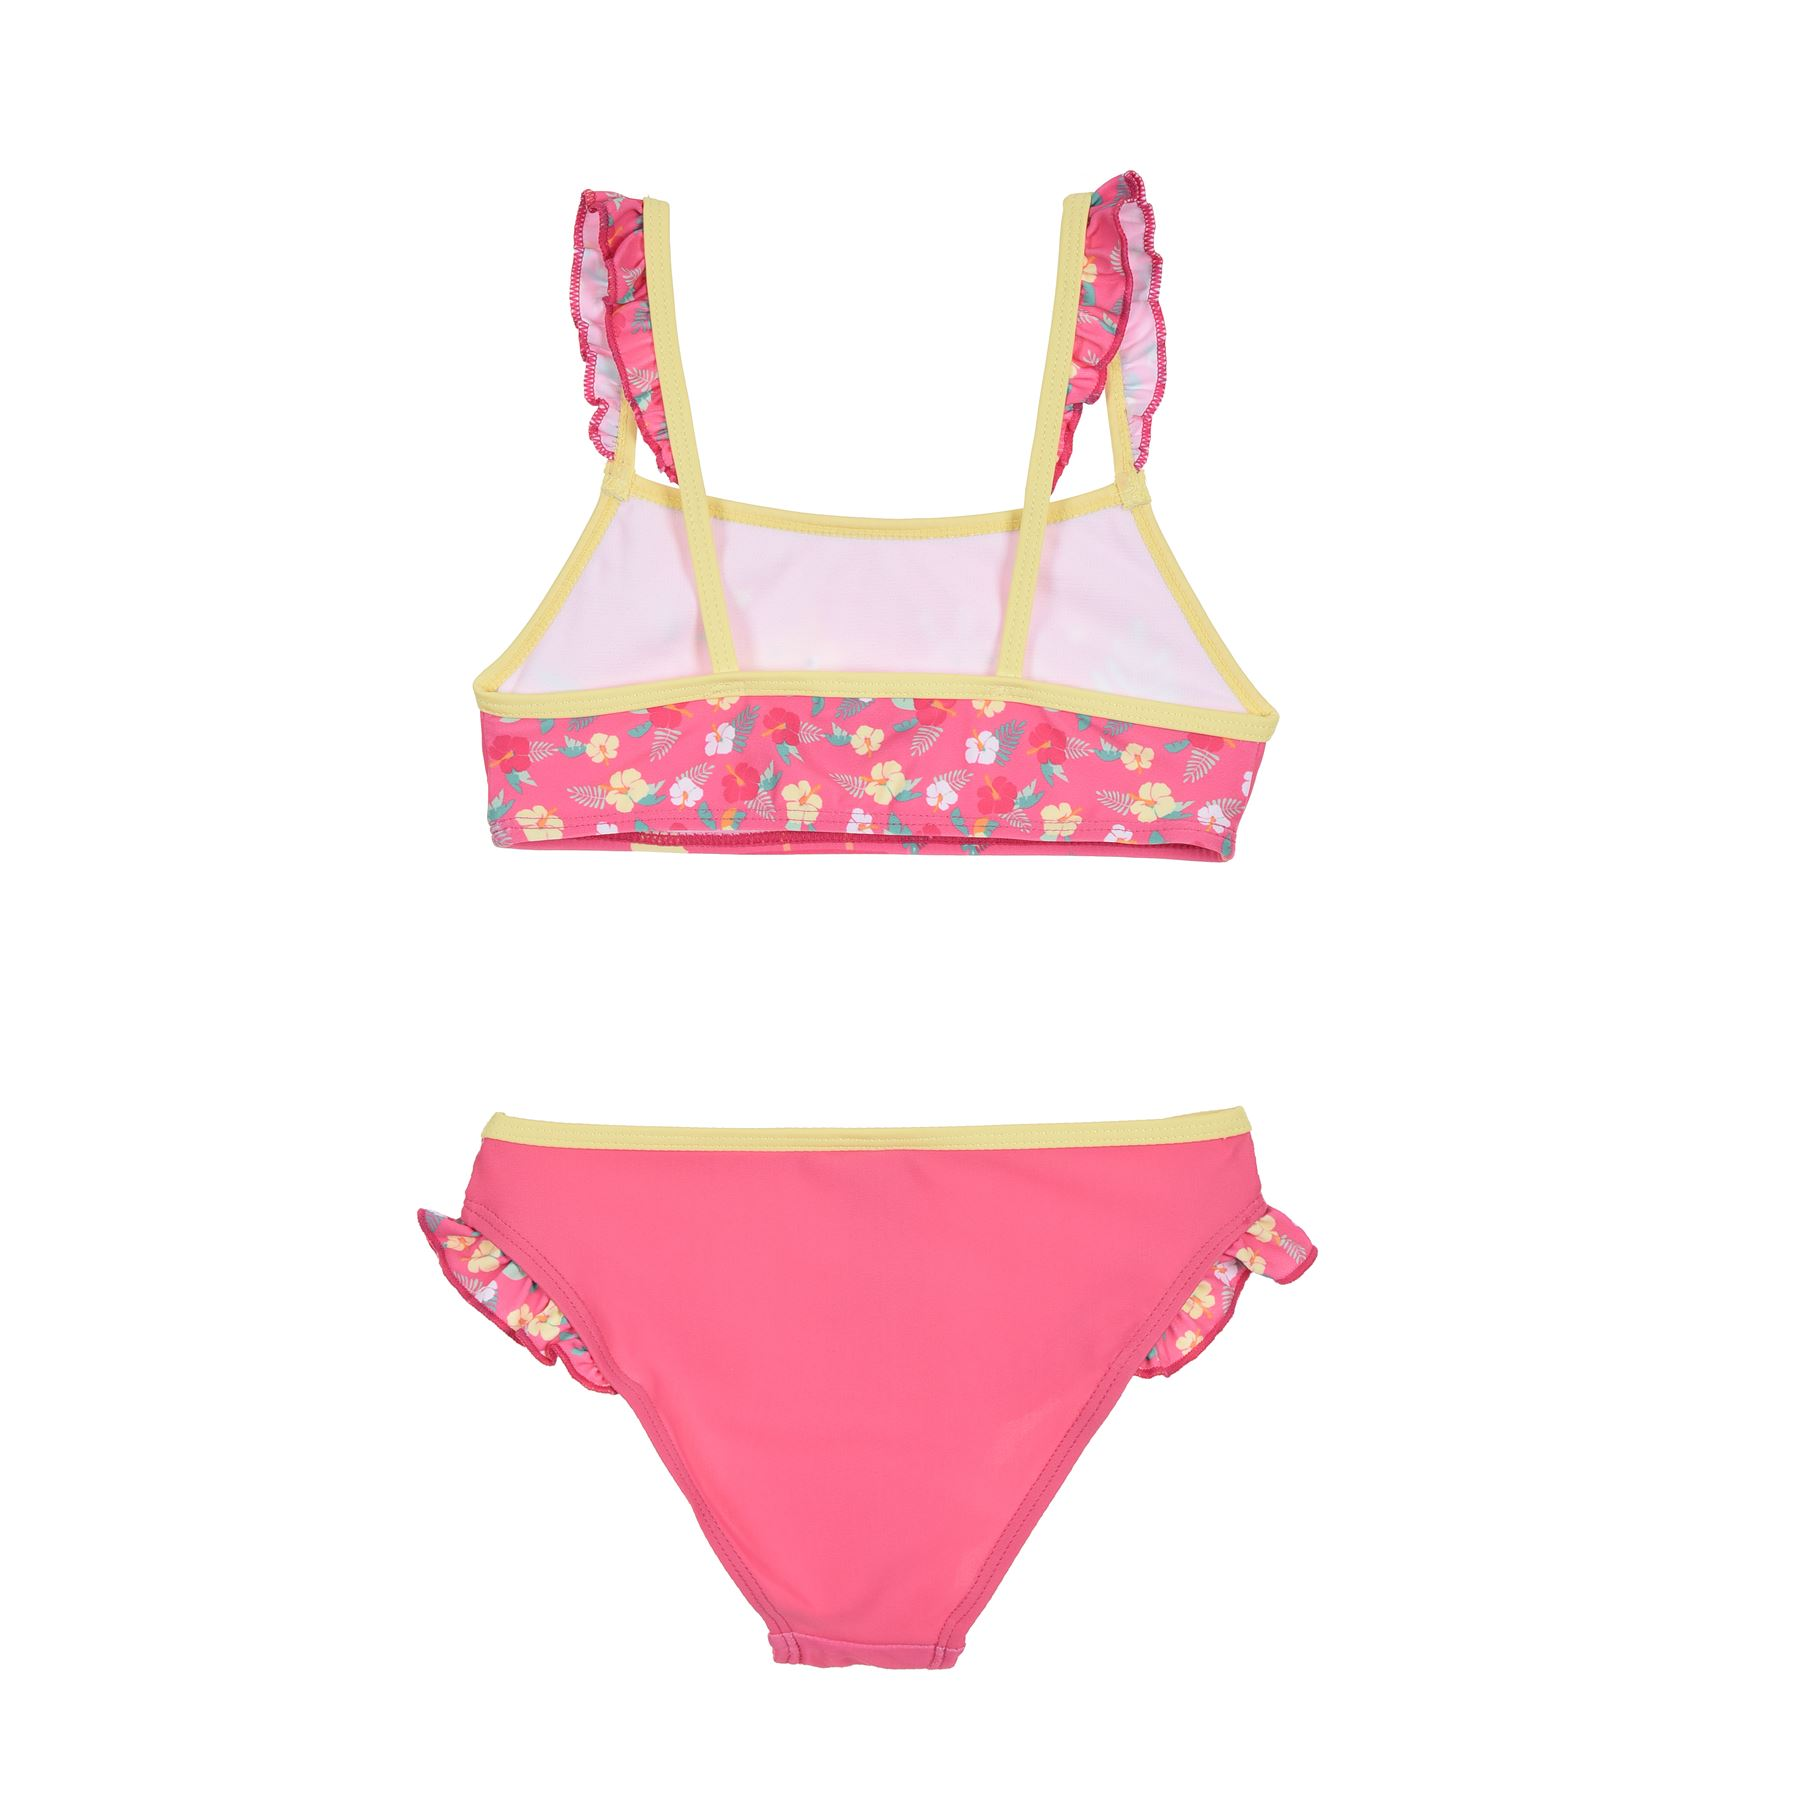 Girls-Bikini-Set-Childrens-Kids-Swimming-Costume-Age-3-8-Years thumbnail 72